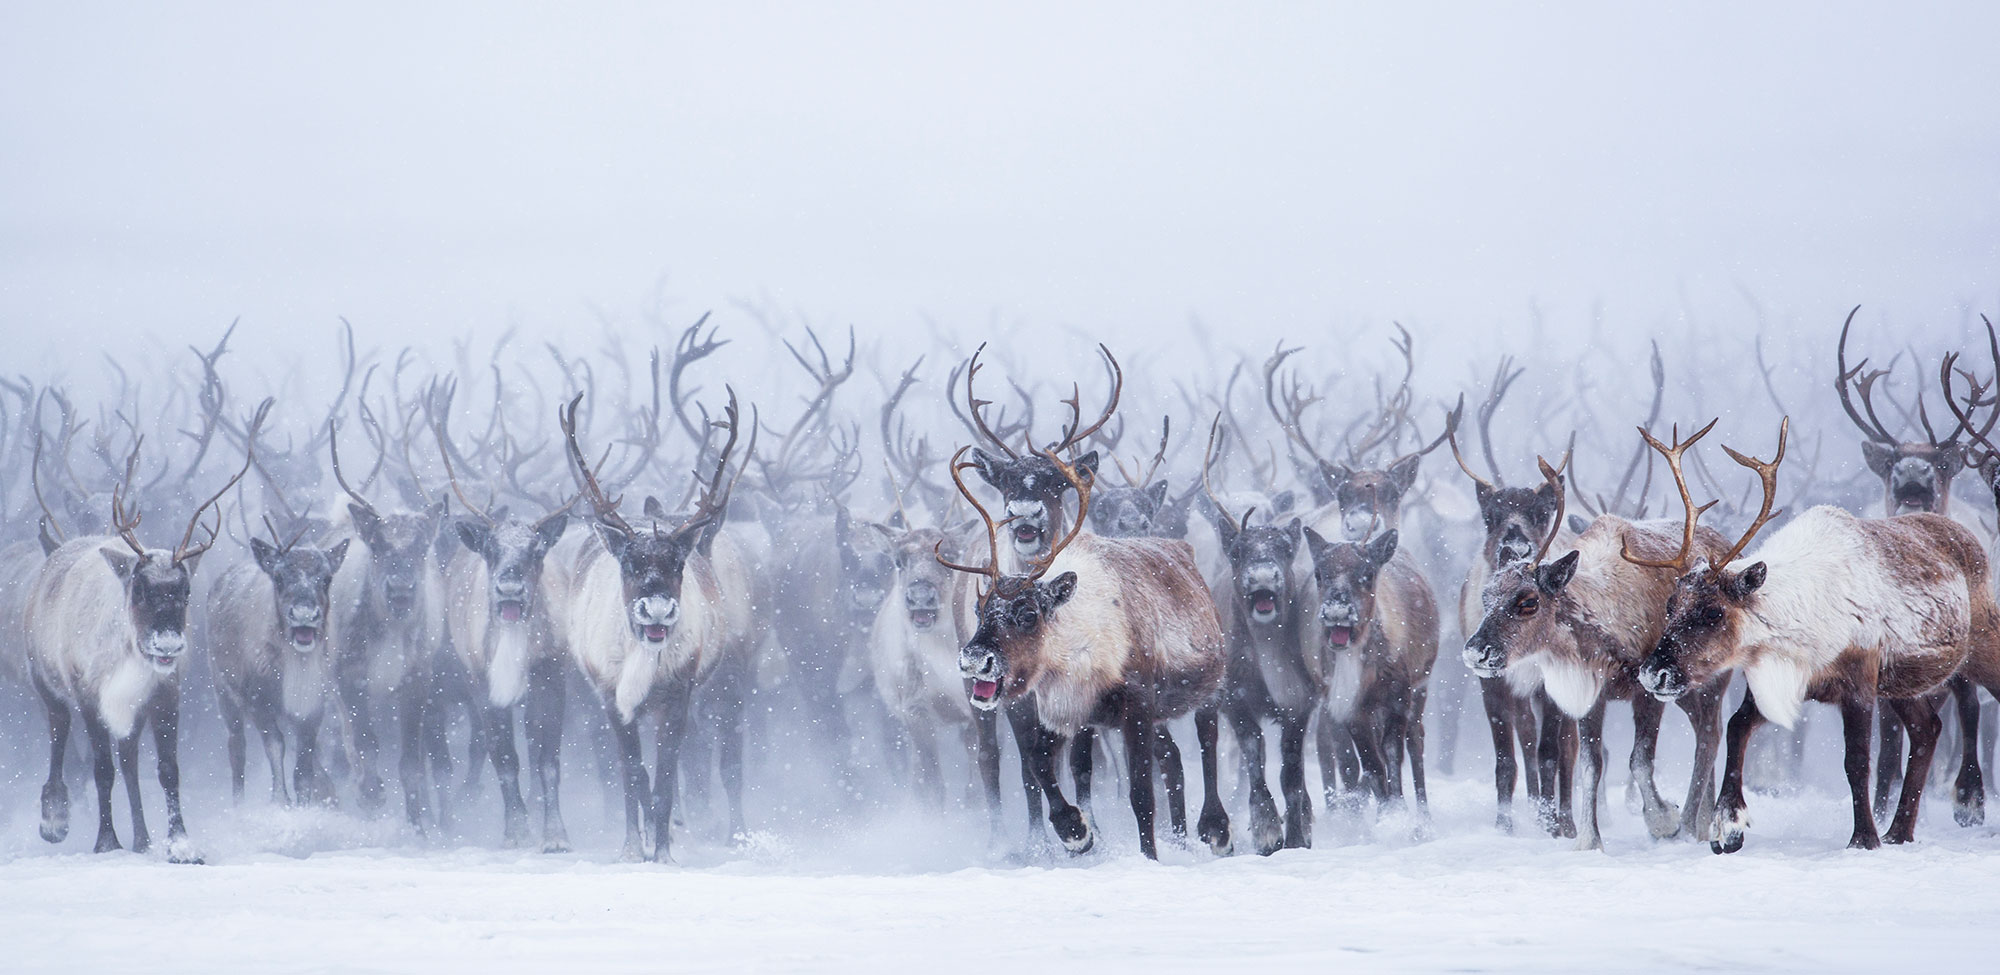 Being Part Of The Herd Nicolas Dory Photography